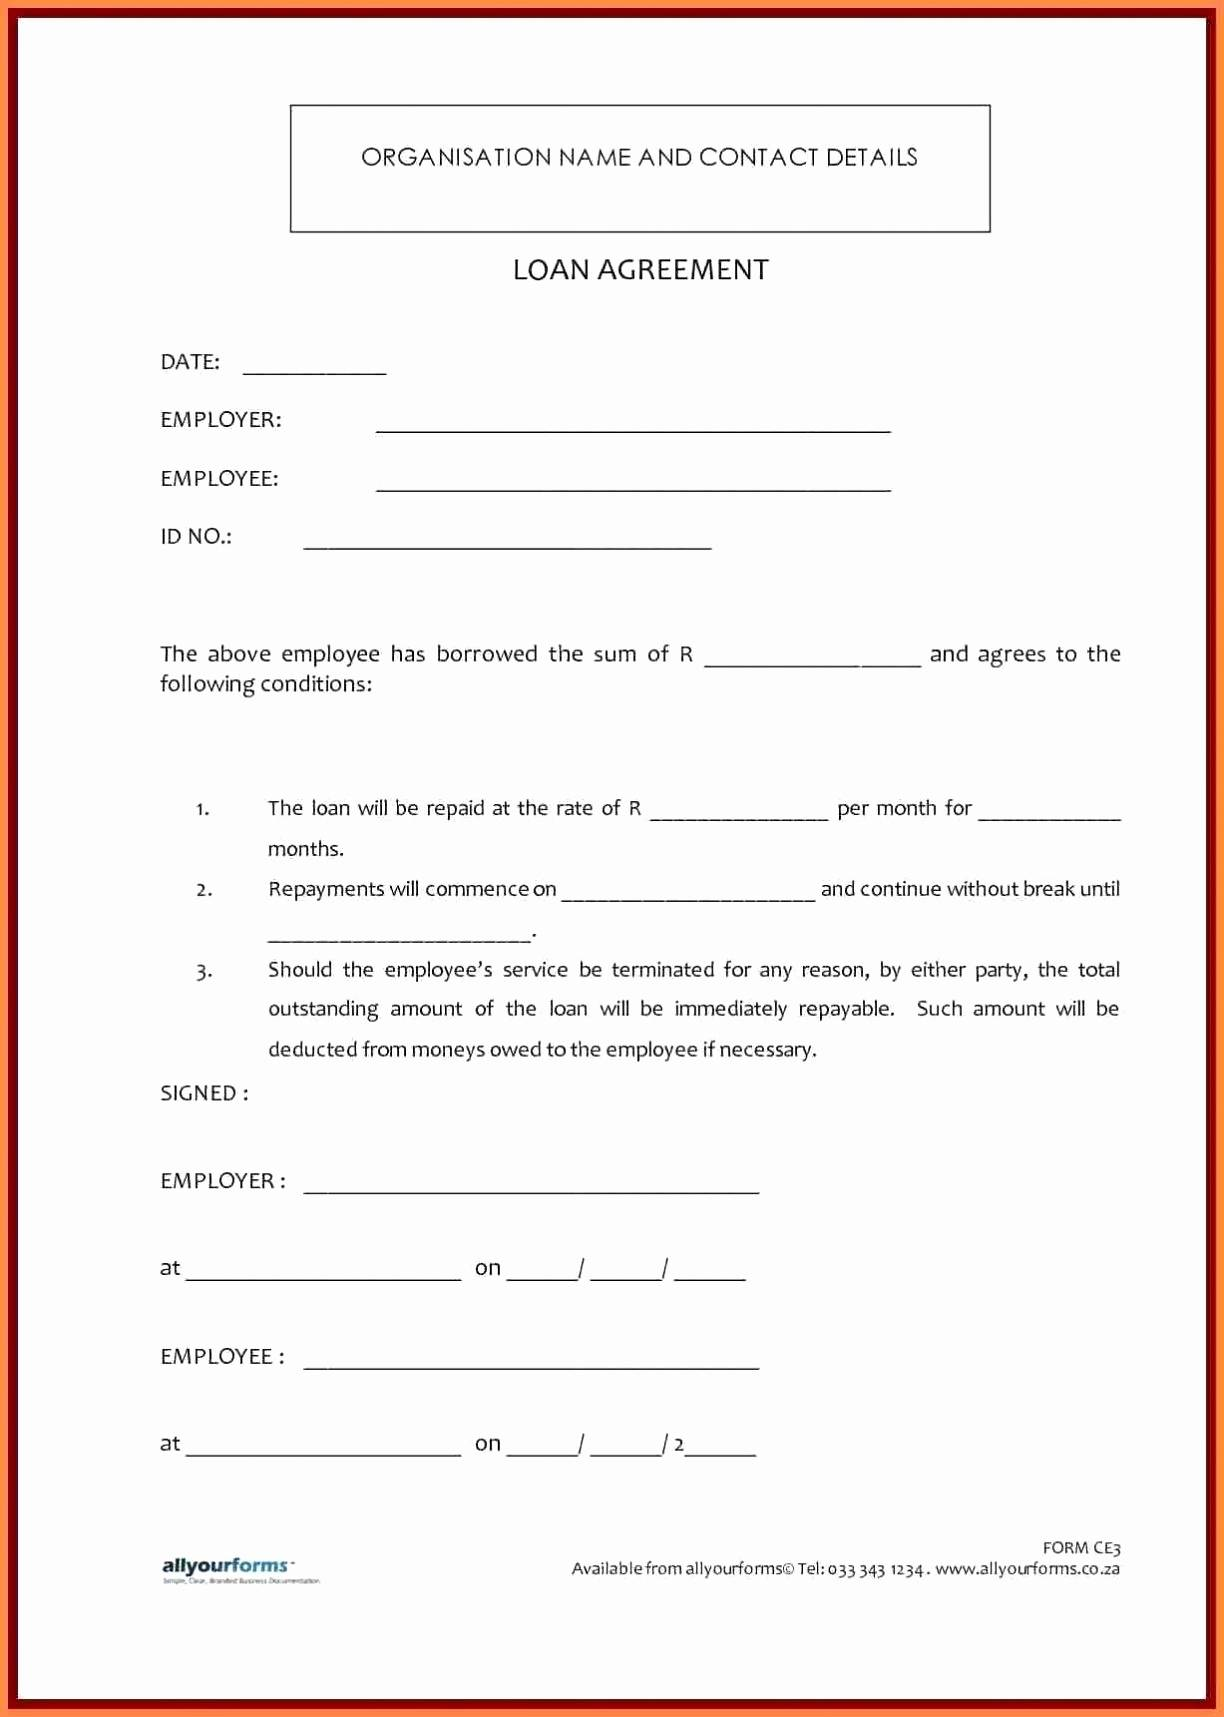 Loan Agreement Contract Form